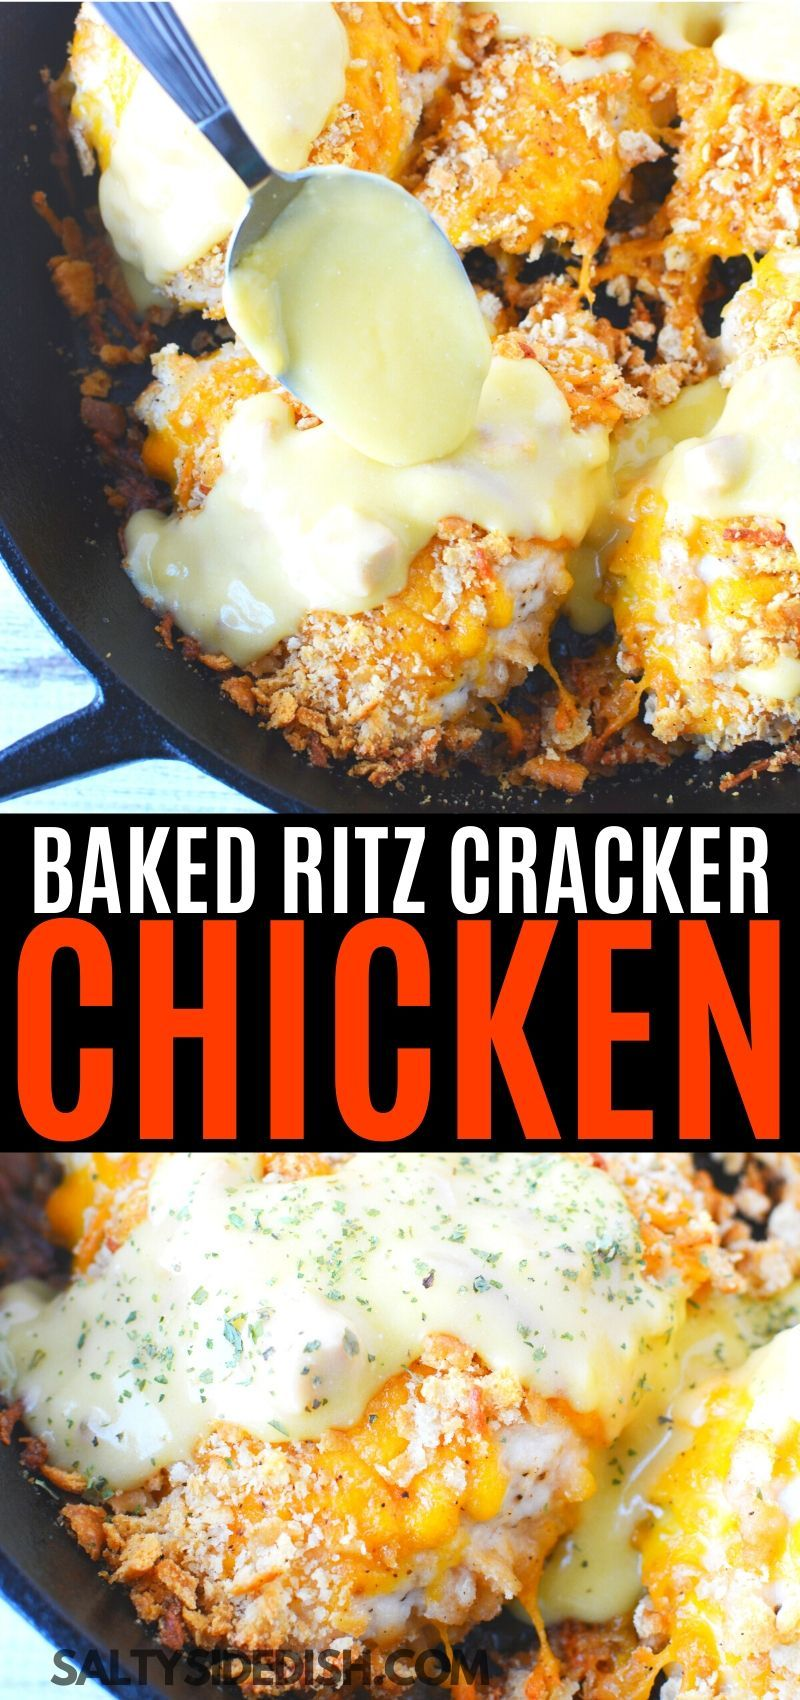 Baked Ritz Cracker Chicken With Cheddar Cheese In 2020 Ritz Cracker Chicken Cracker Chicken Recipes